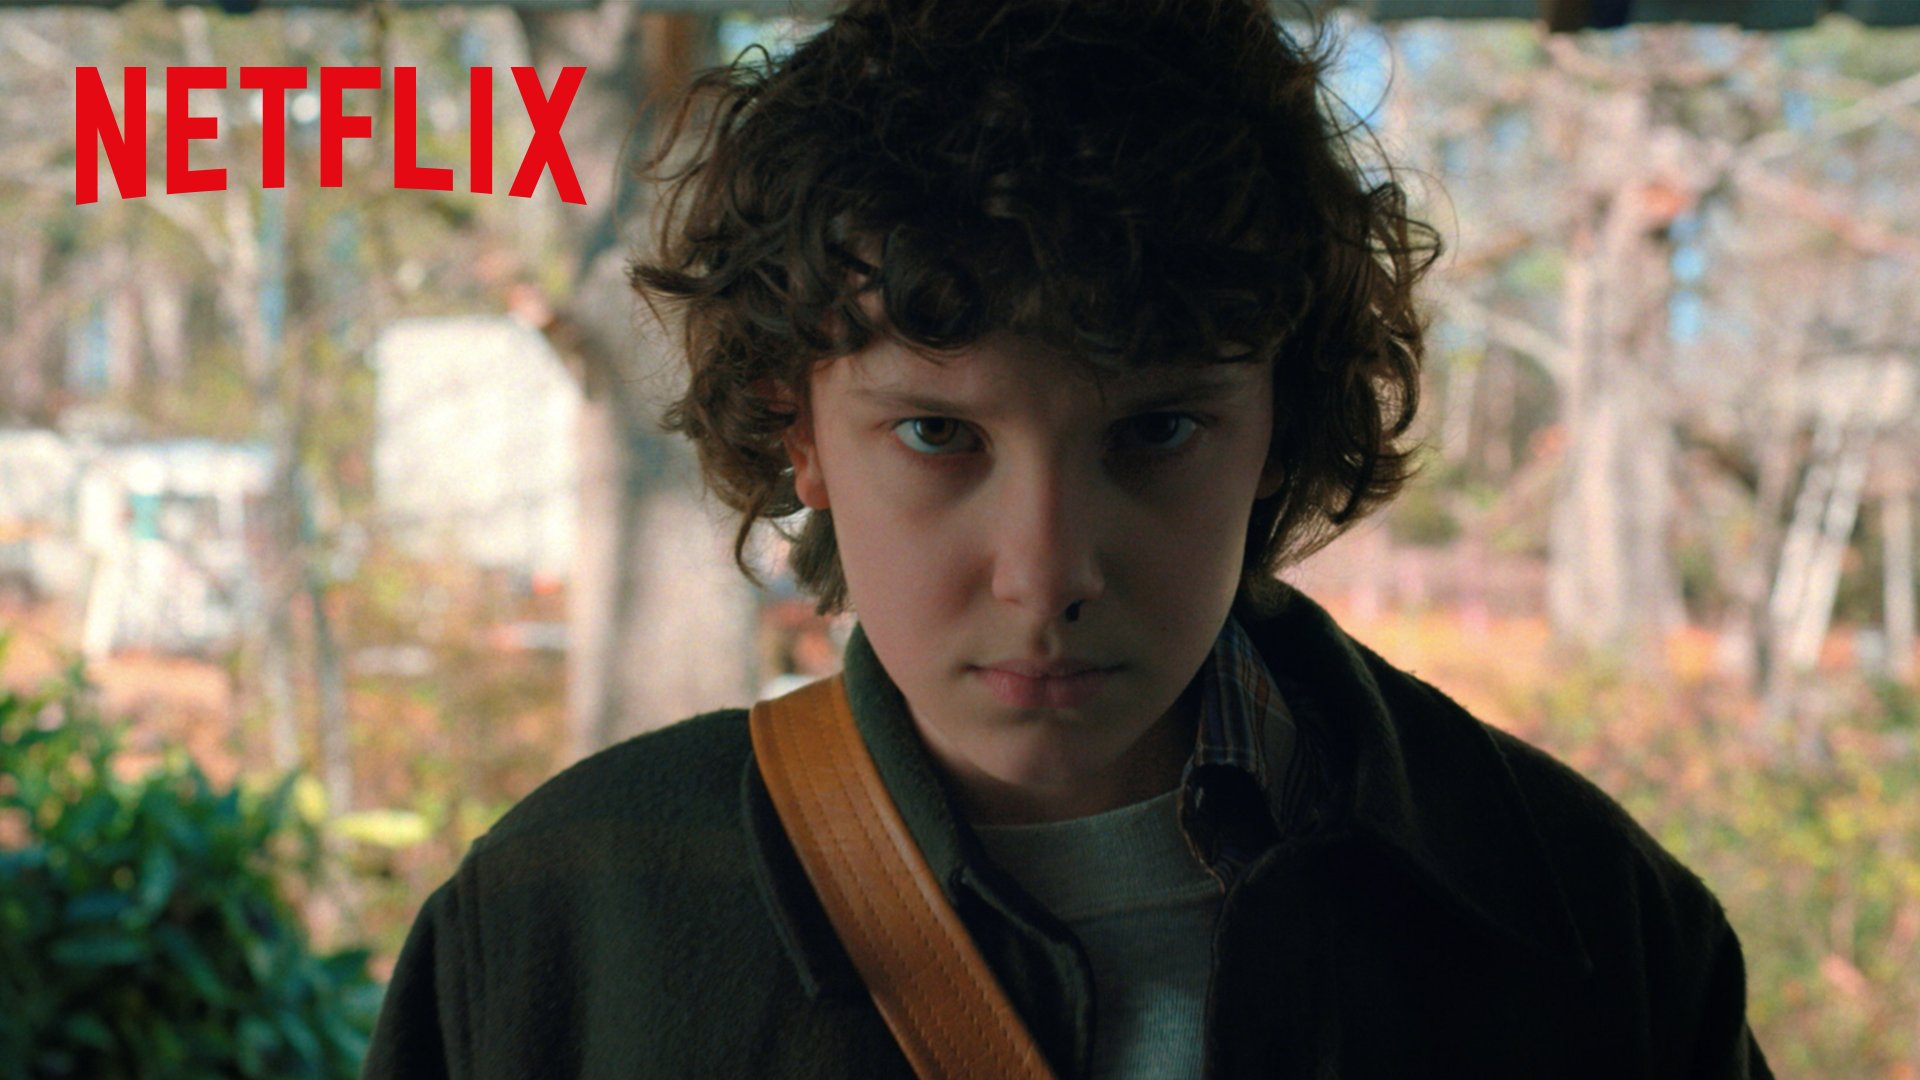 It's here. #StrangerThings https://t.co/HeEs3JHxGQ